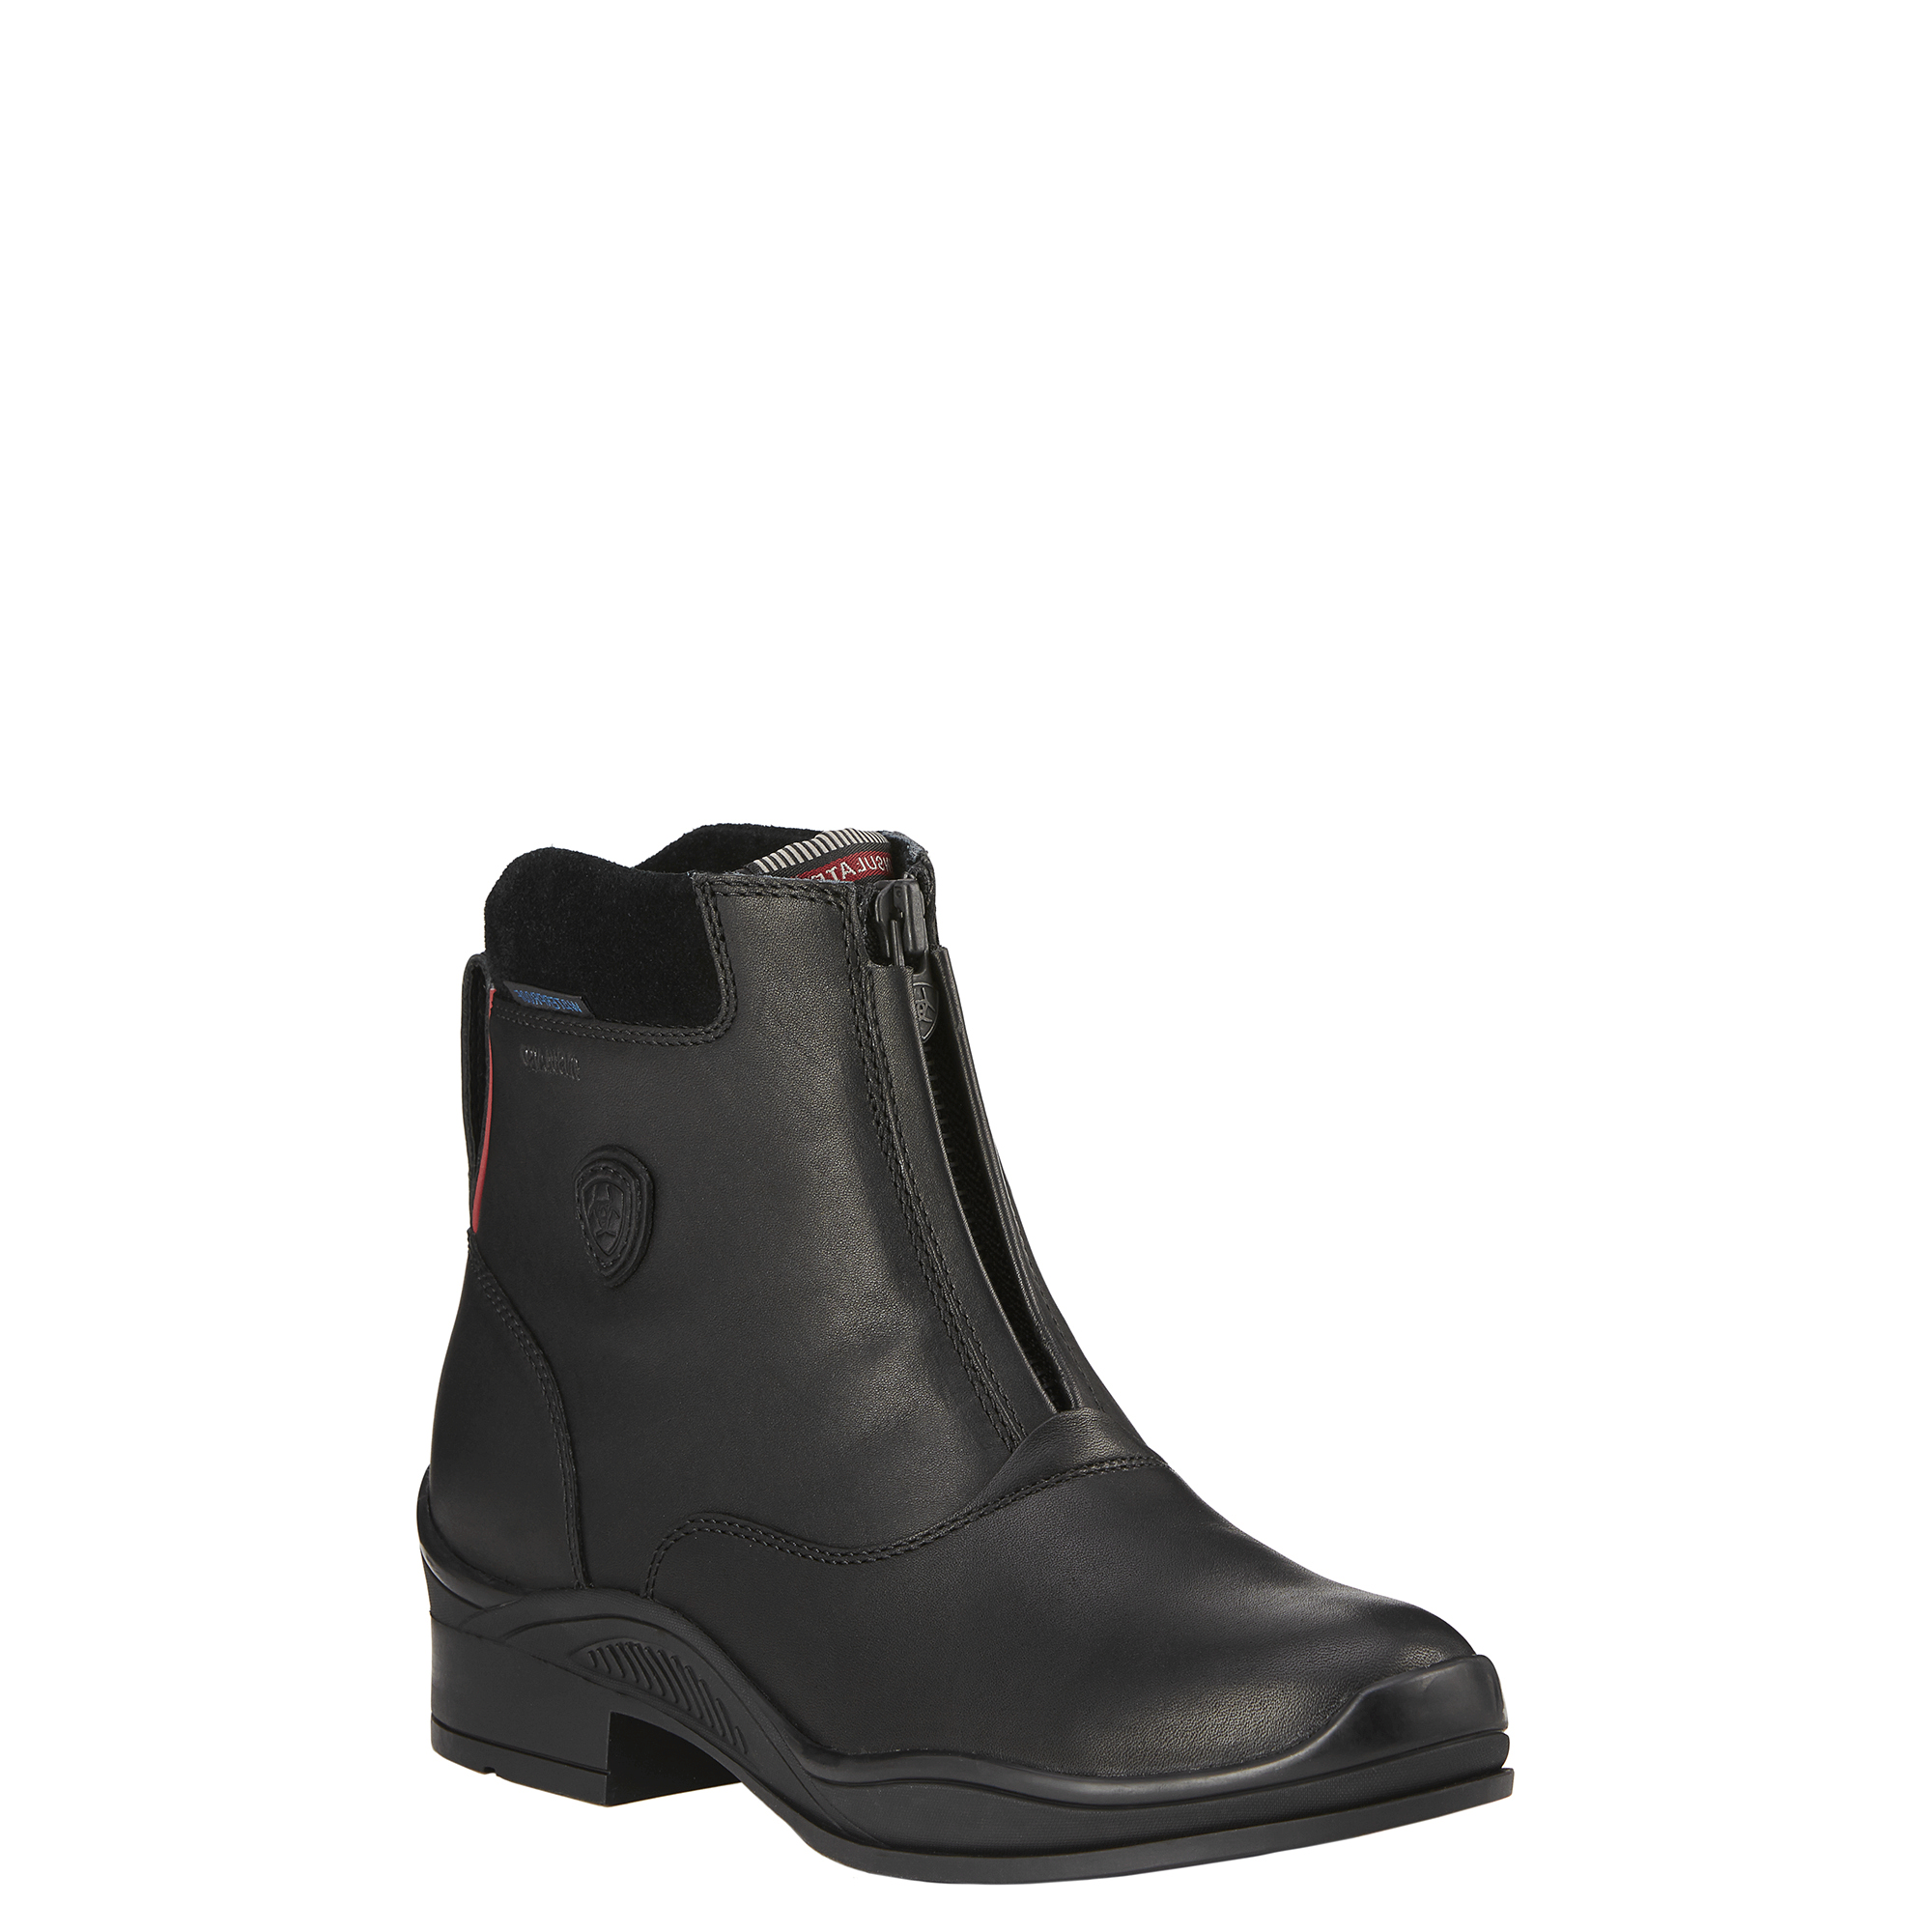 ARIAT Women's Extreme Zip H2O Insulated Paddock